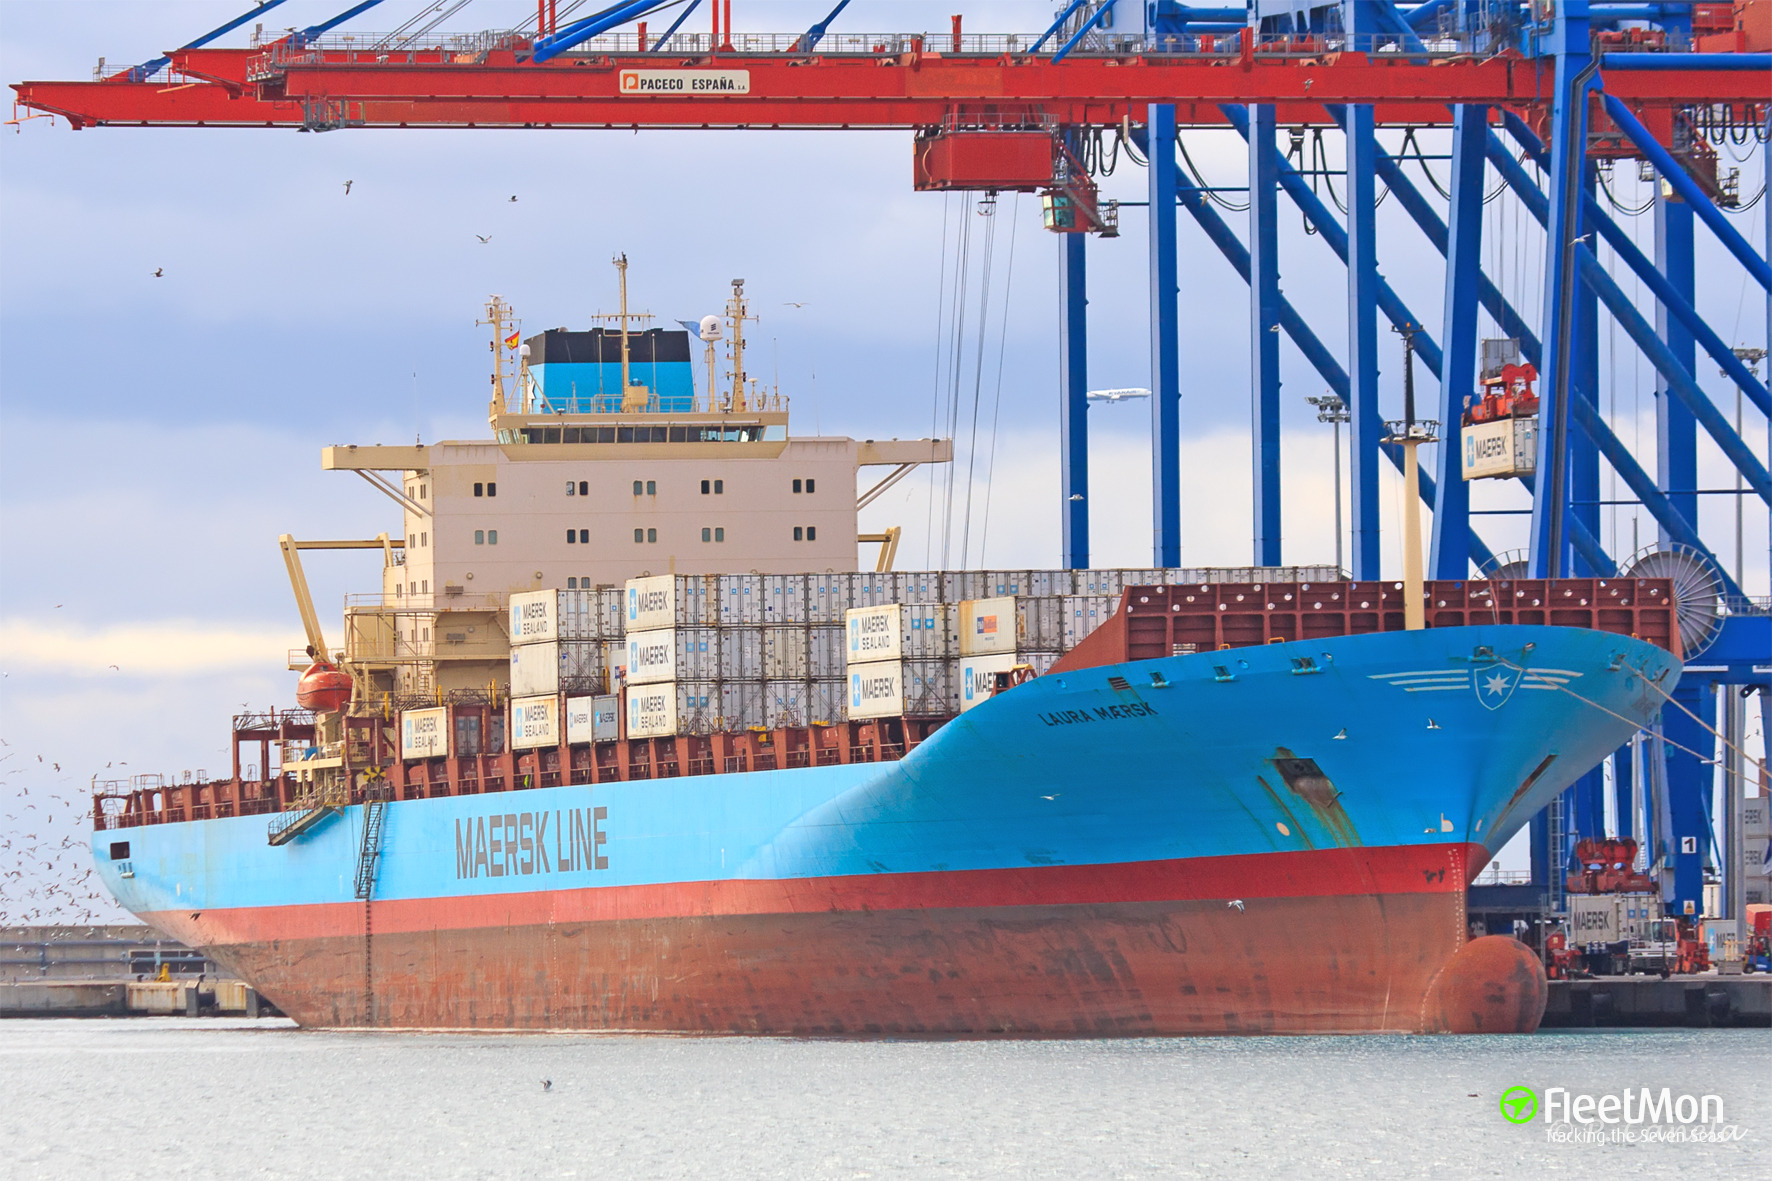 229 kilos of cocaine on Maersk' boxship